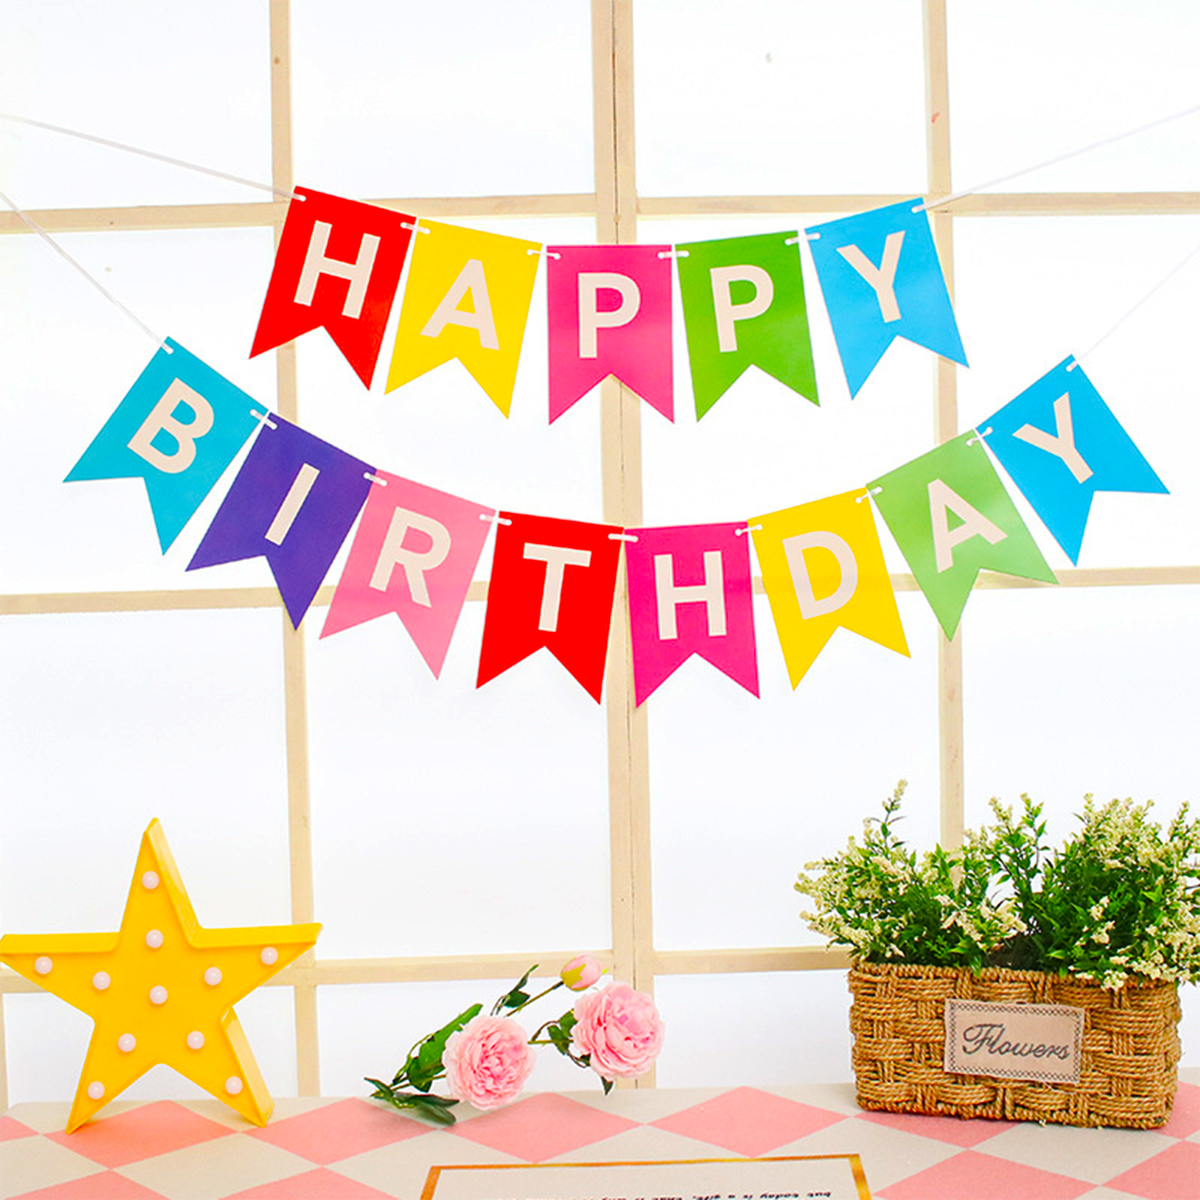 Rainbow Birthday Party Decorations Supplies PREMIUM Set Colorful Happy Bday Banner | Kids Fiesta Cumpleaños Decoracion Colored Balloons Girls Boys | Unicorn Carnival Pom Poms Circle Triangle Bunting